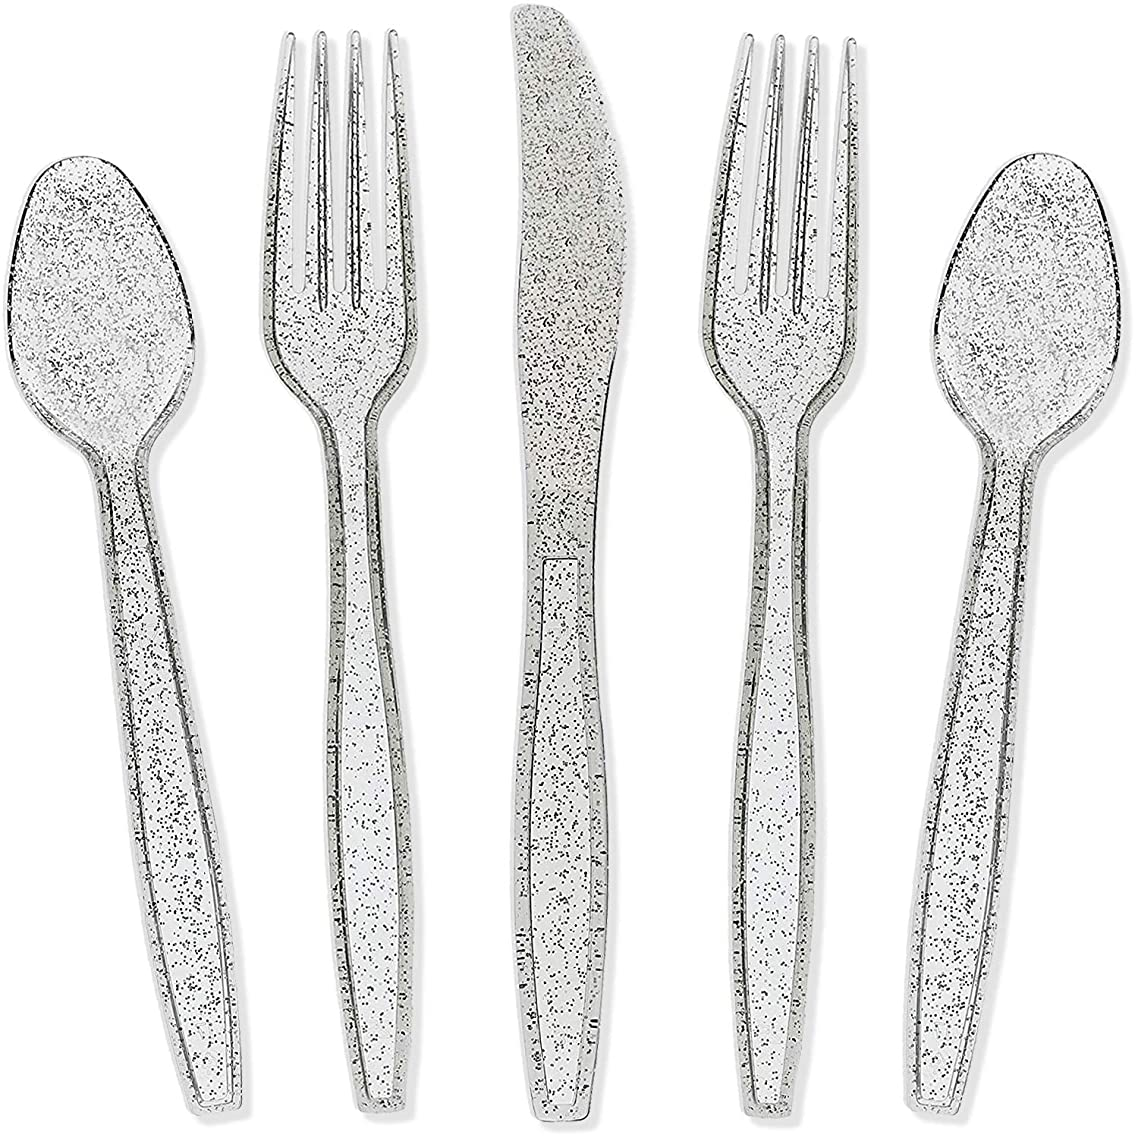 Juvale Silver Glitter Plastic Cutlery Set of 48 Forks Knives and Spoons (Silver)